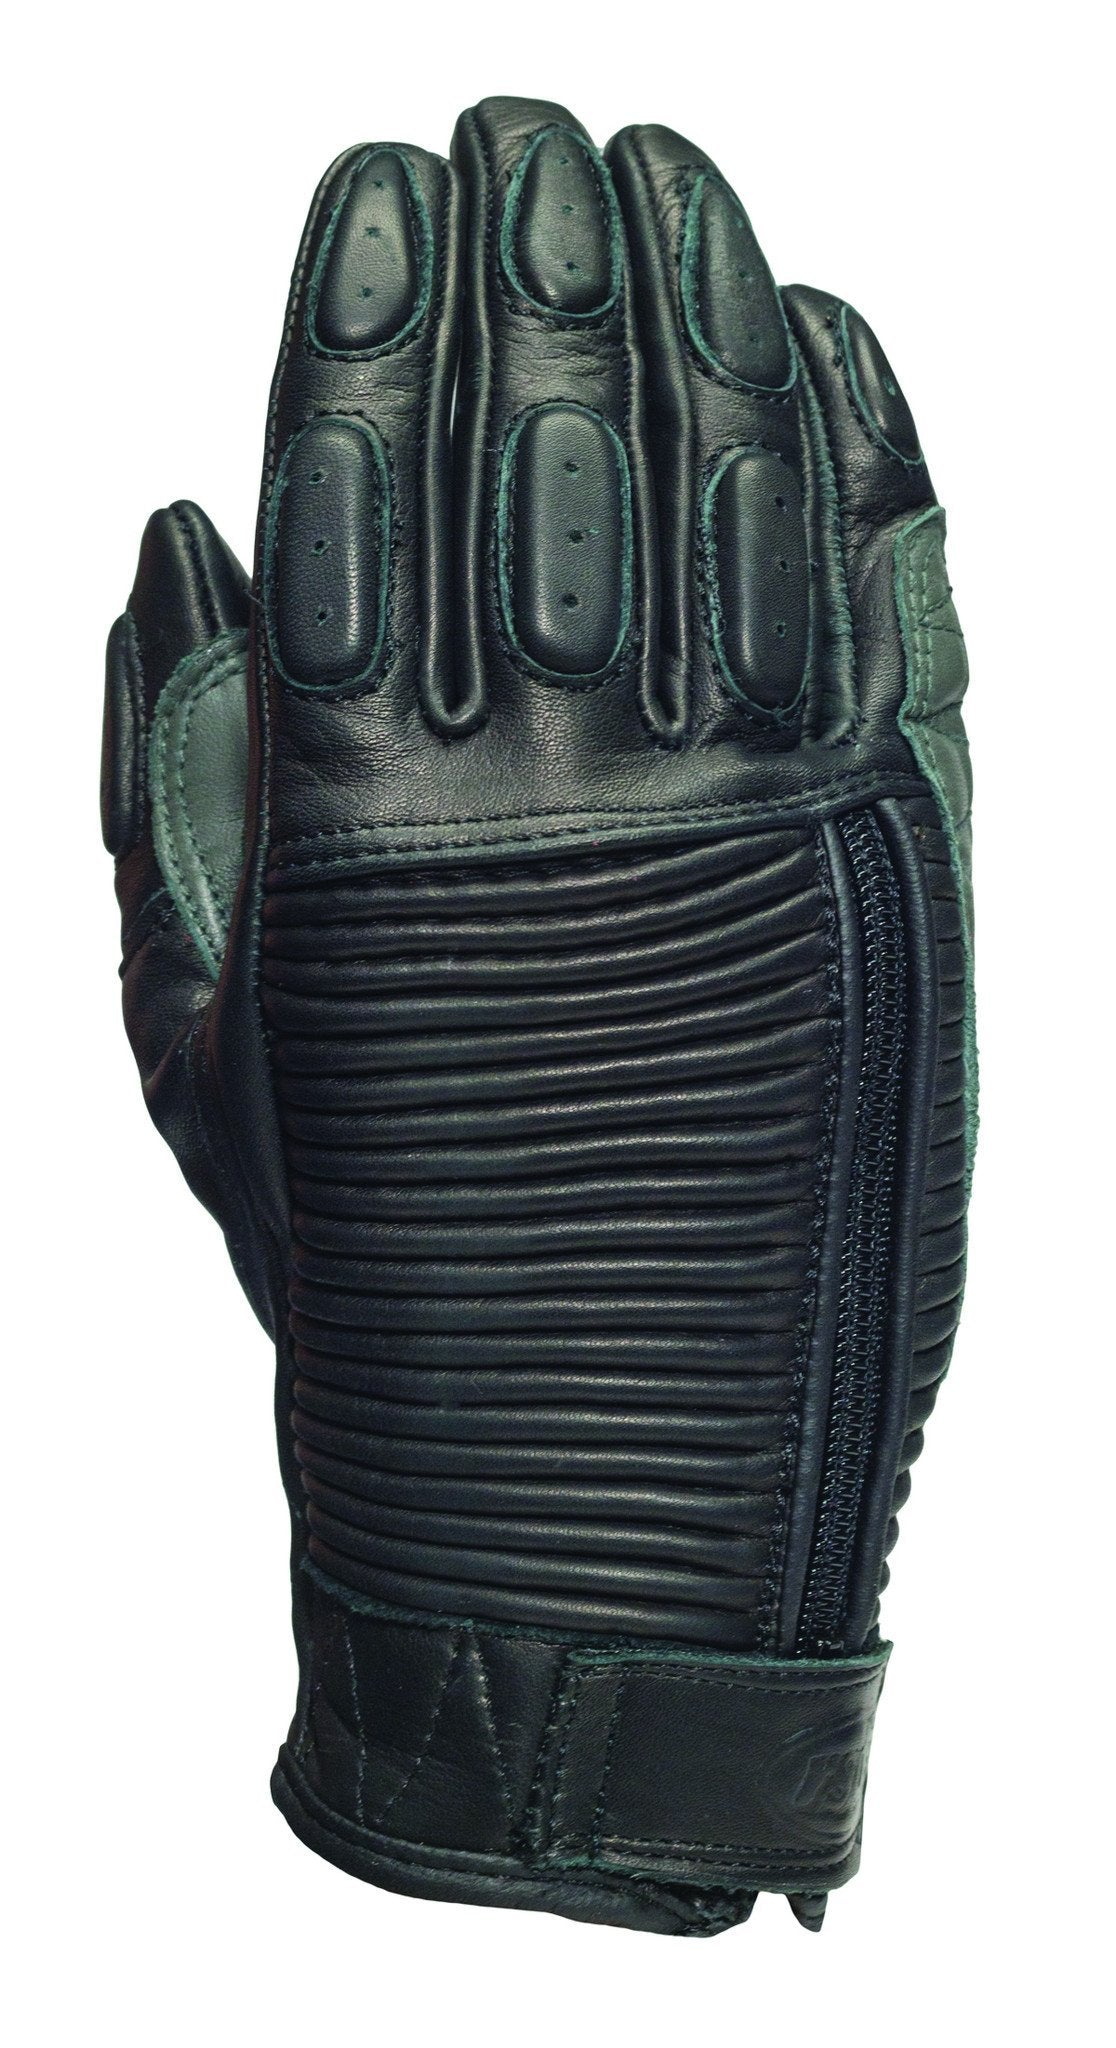 Roland Sands Design - Roland Sands Design Ladies Gezel Gloves - Black - Gloves - Salt Flats Clothing